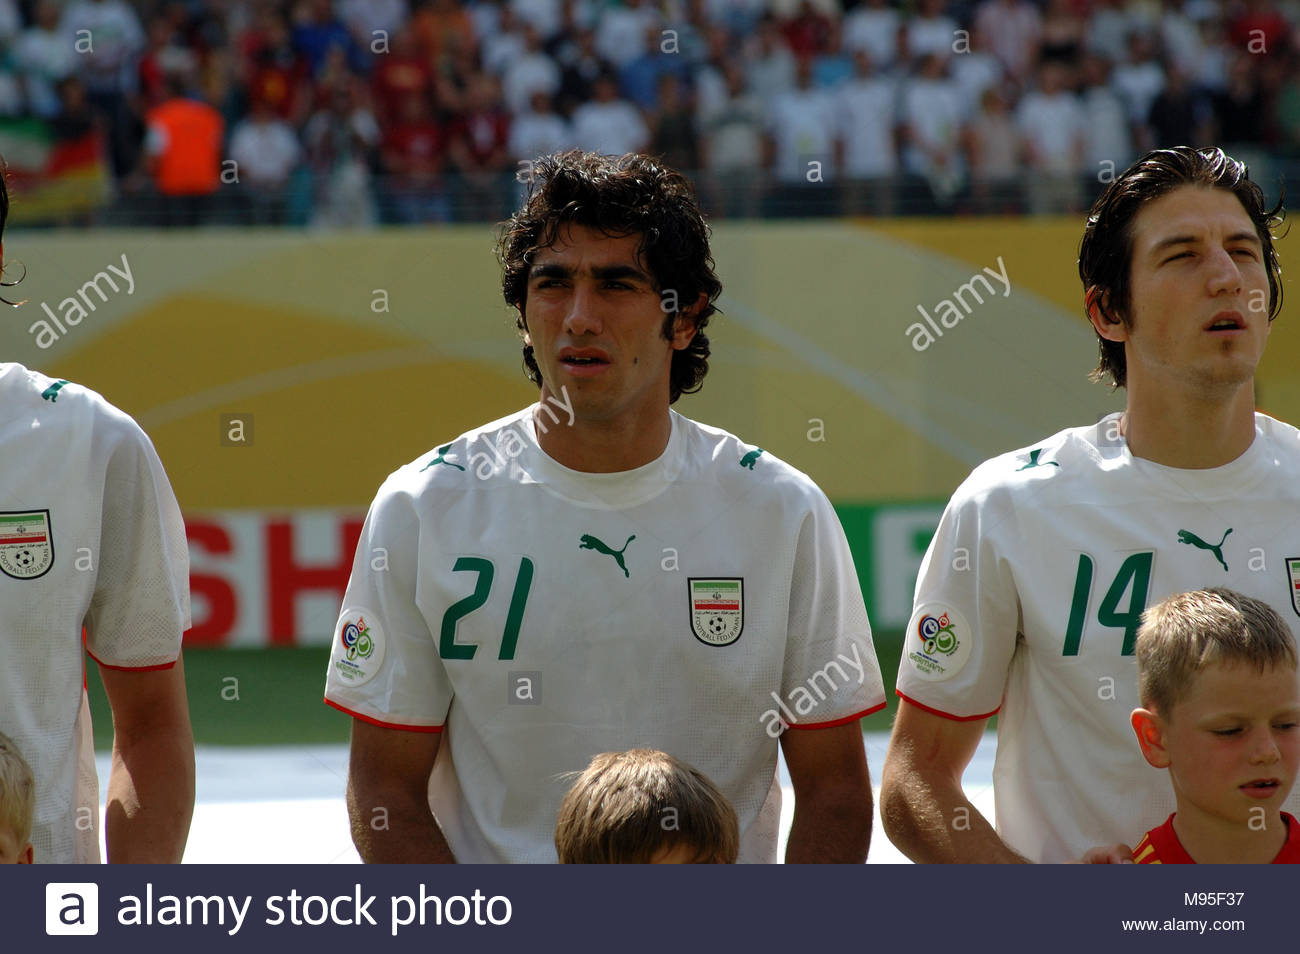 Leipzig Germany 21 June 2006 Fifa World Cup 2006 Group Stage Tie